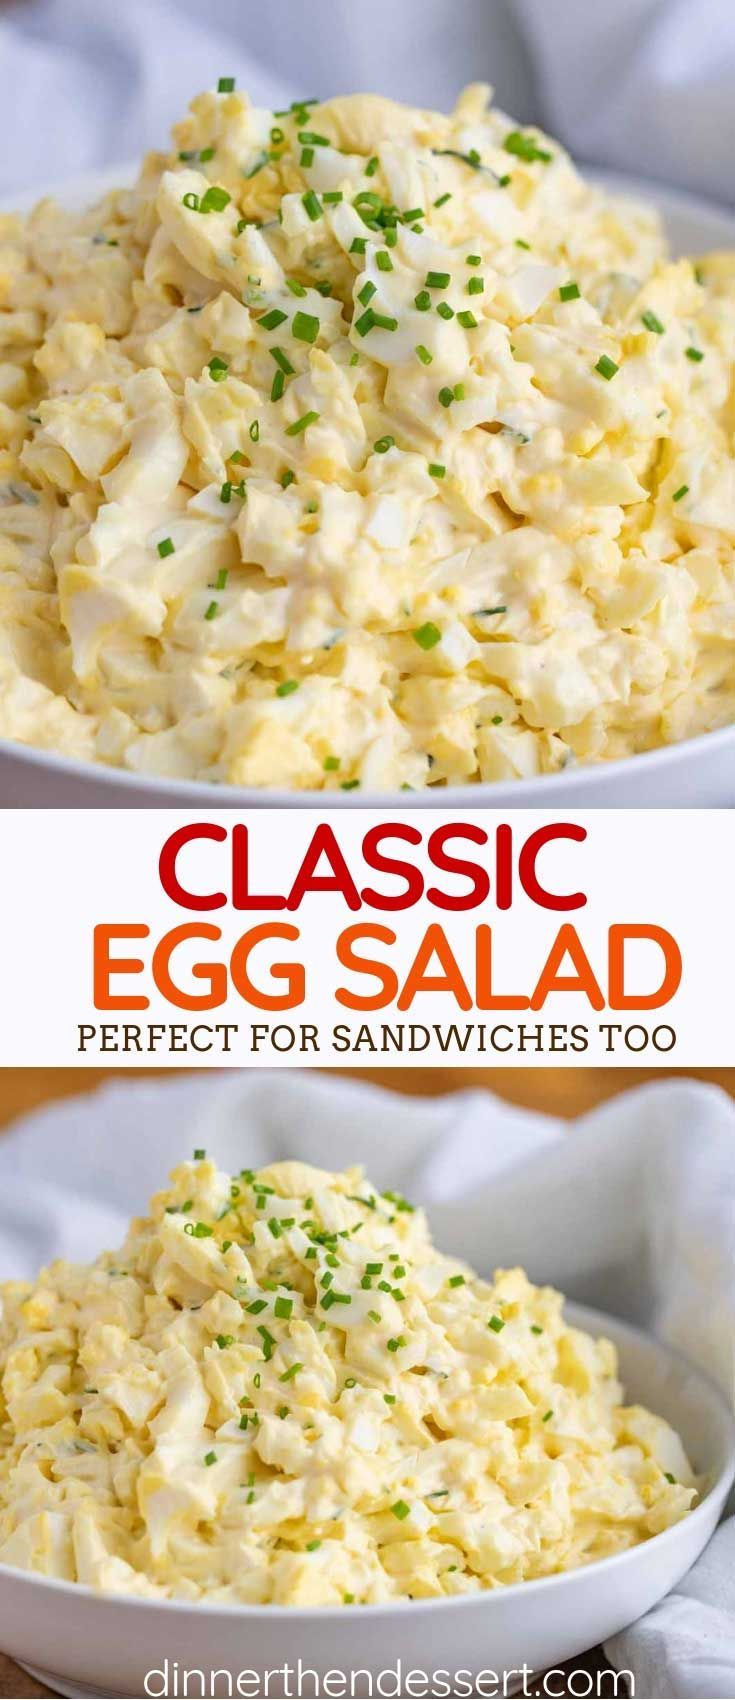 Classic Egg Salad is the PERFECT lunch, made with seasoned mayonnaise, mustard, ... - All The... Classic Egg Salad is the PERFECT lunch, made with seasoned mayonnaise, mustard, ... - All The Recipes - Dinner, then Dessert ,